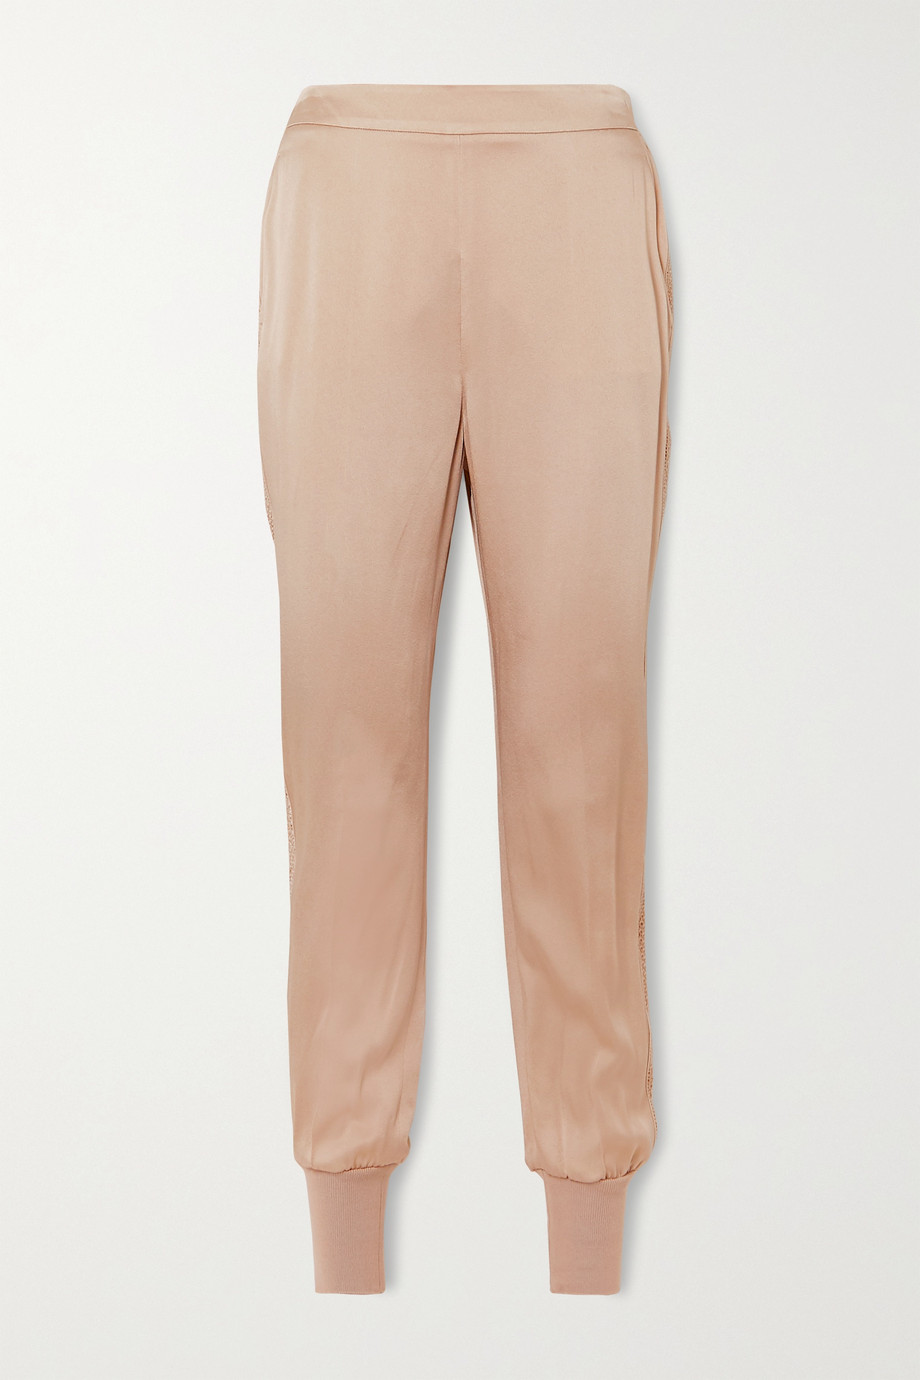 Stella McCartney + NET SUSTAIN Julia crochet-trimmed satin track pants